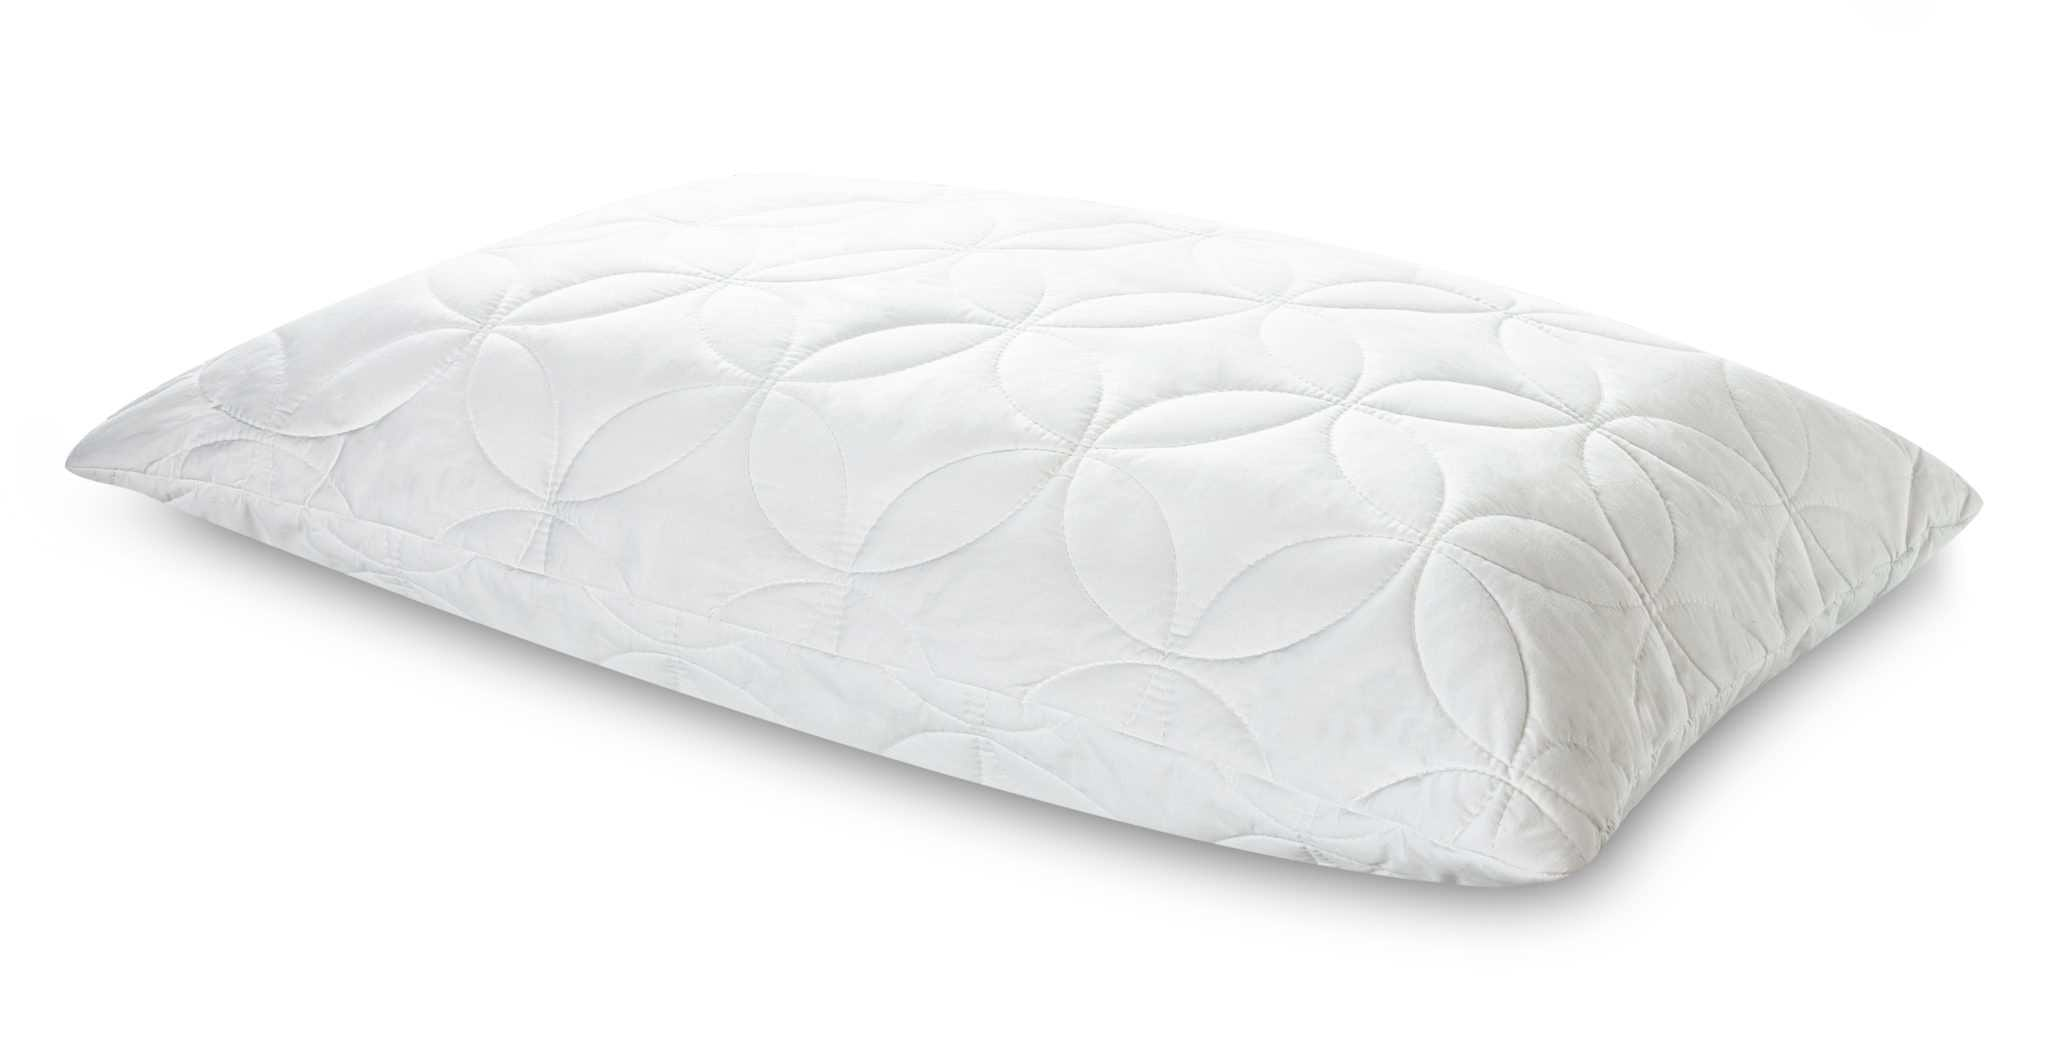 Tempur Pedic Soft & Conforming Pillow